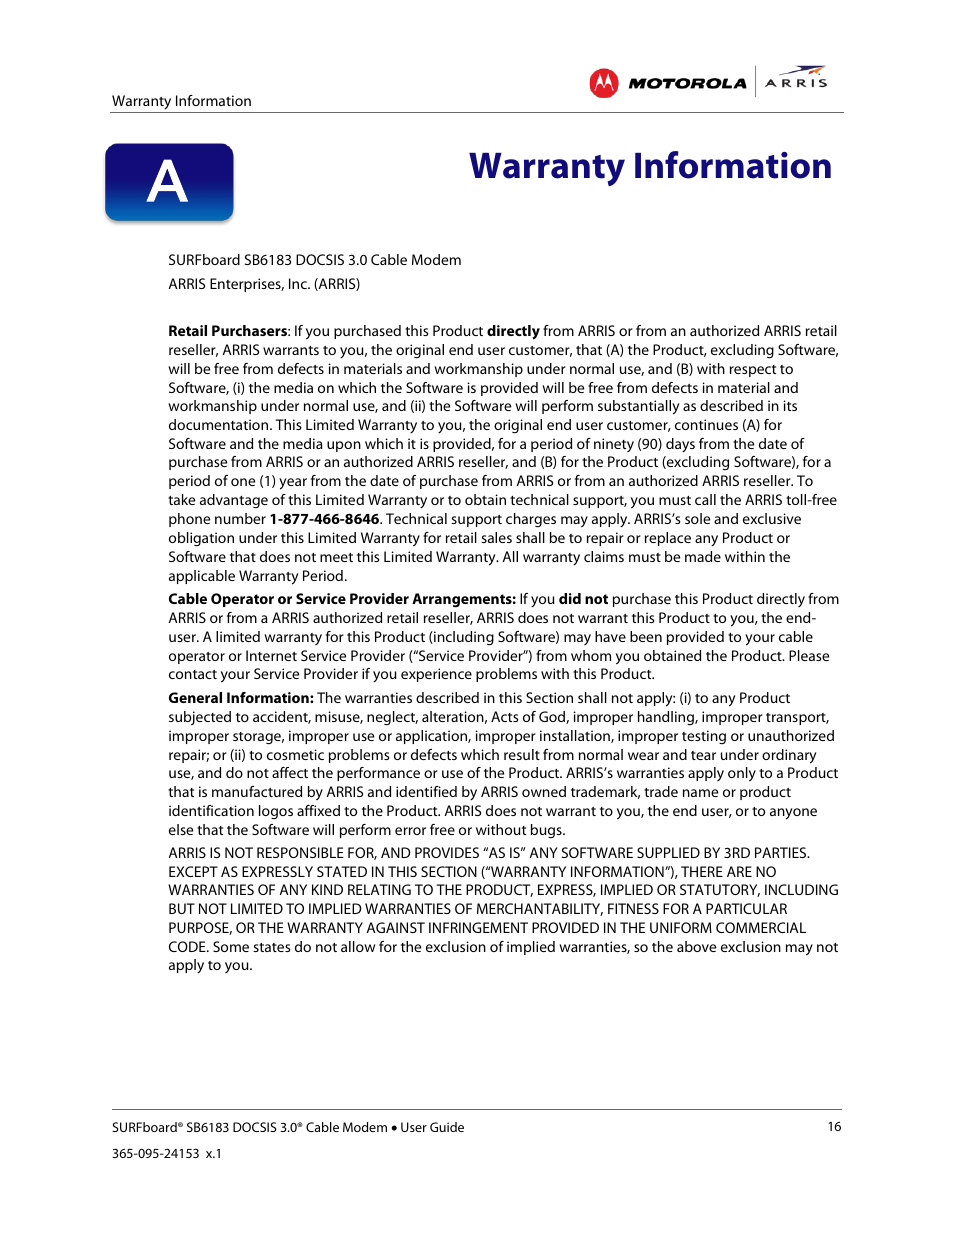 Limited Warranty Information Manual Guide